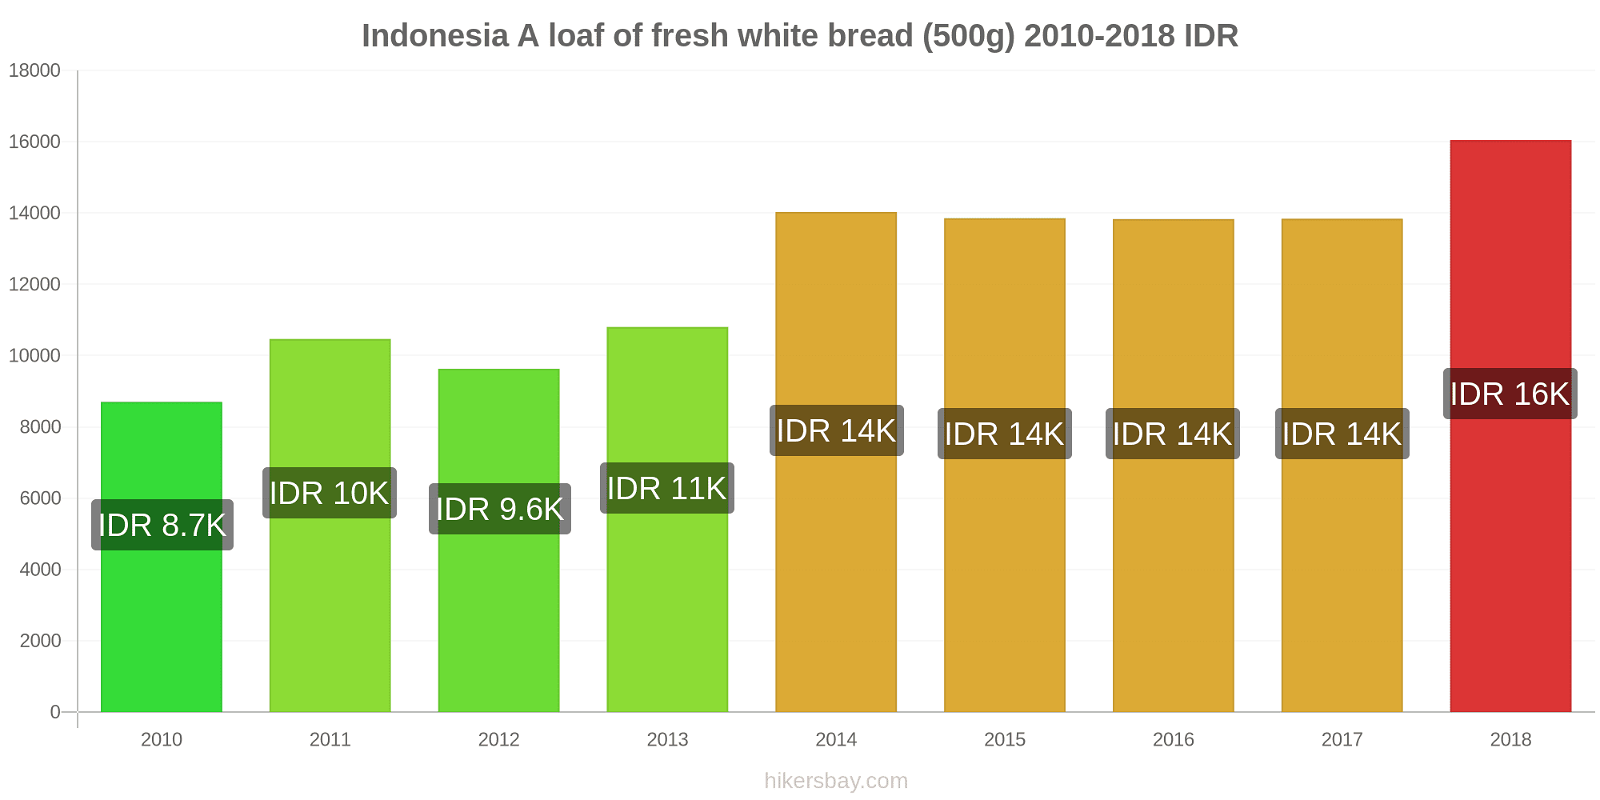 Indonesia price changes A loaf of fresh white bread (500g) hikersbay.com